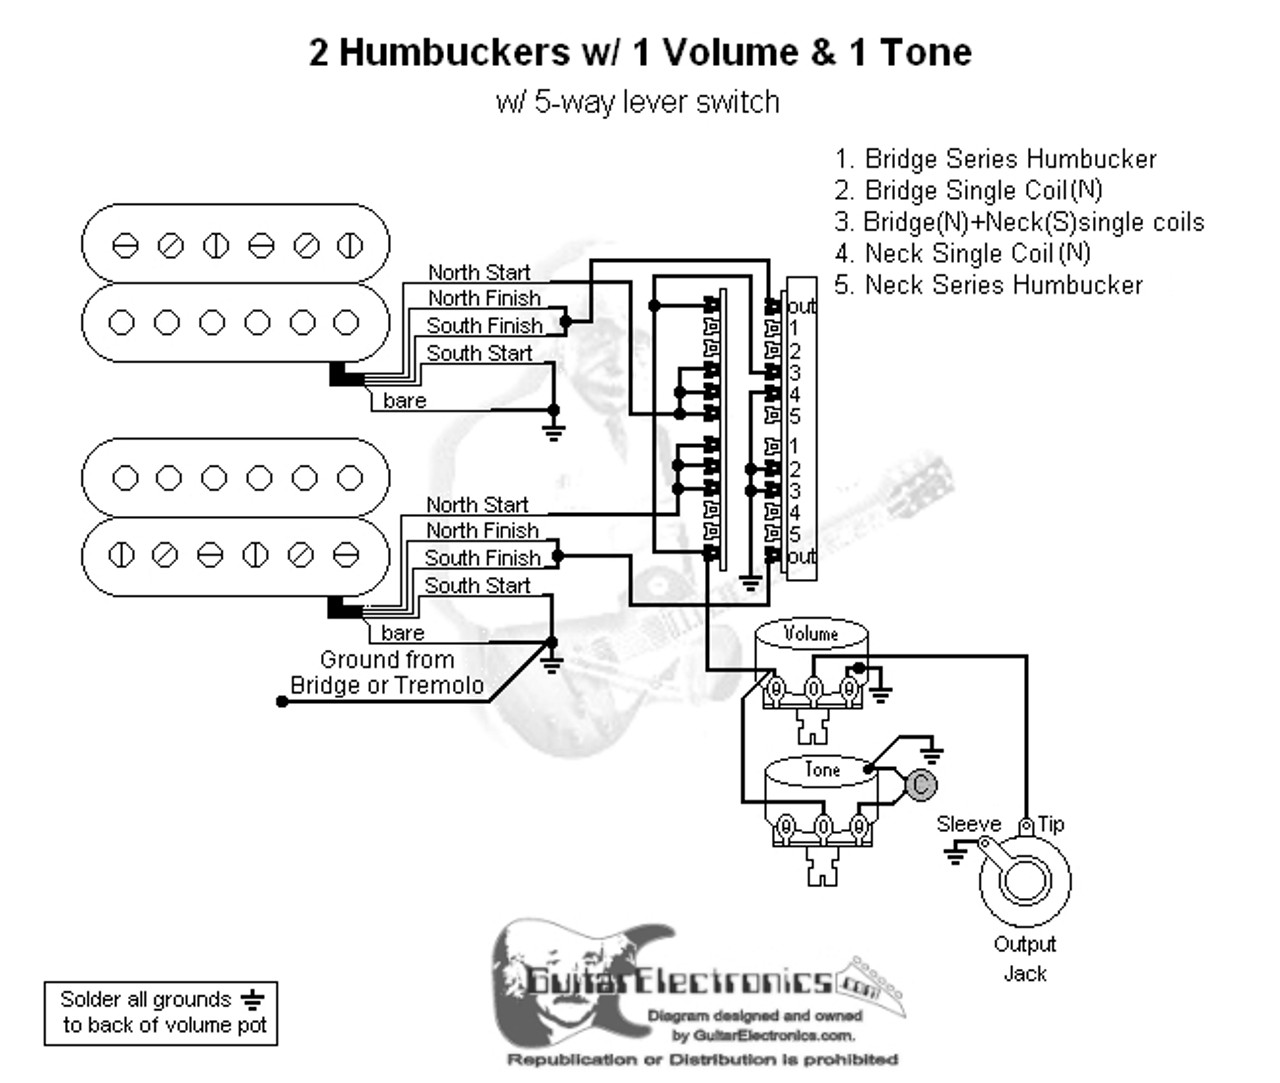 small resolution of wiring diagram 2 humbuckers 1 volume 1 tone 5 way switch wiring2 humbuckers 5 way lever